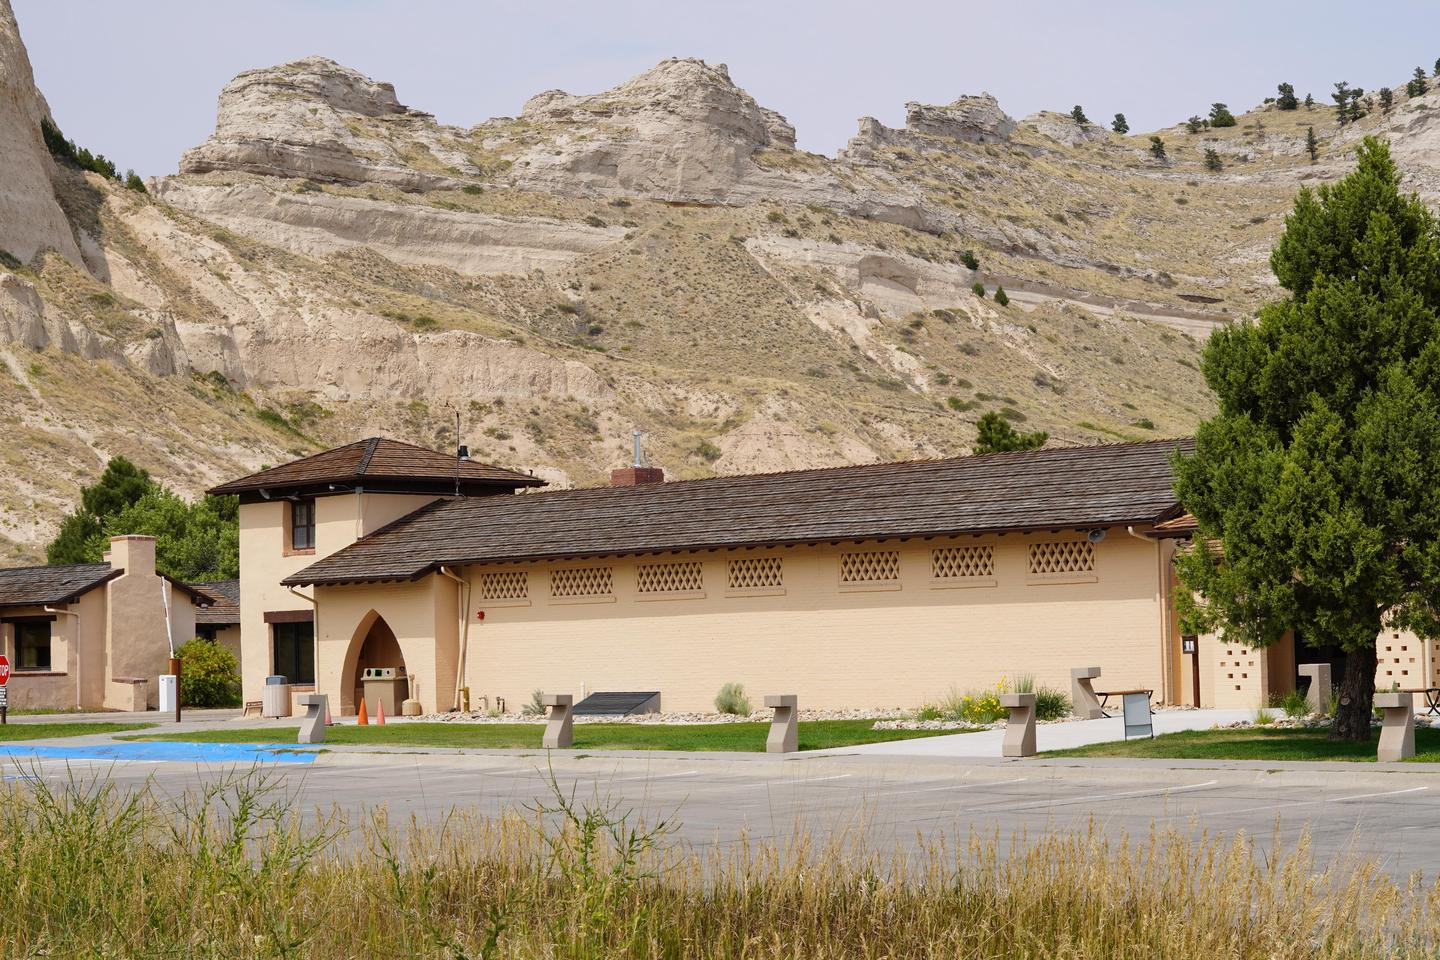 Preview photo of Scotts Bluff National Monument Visitor Center